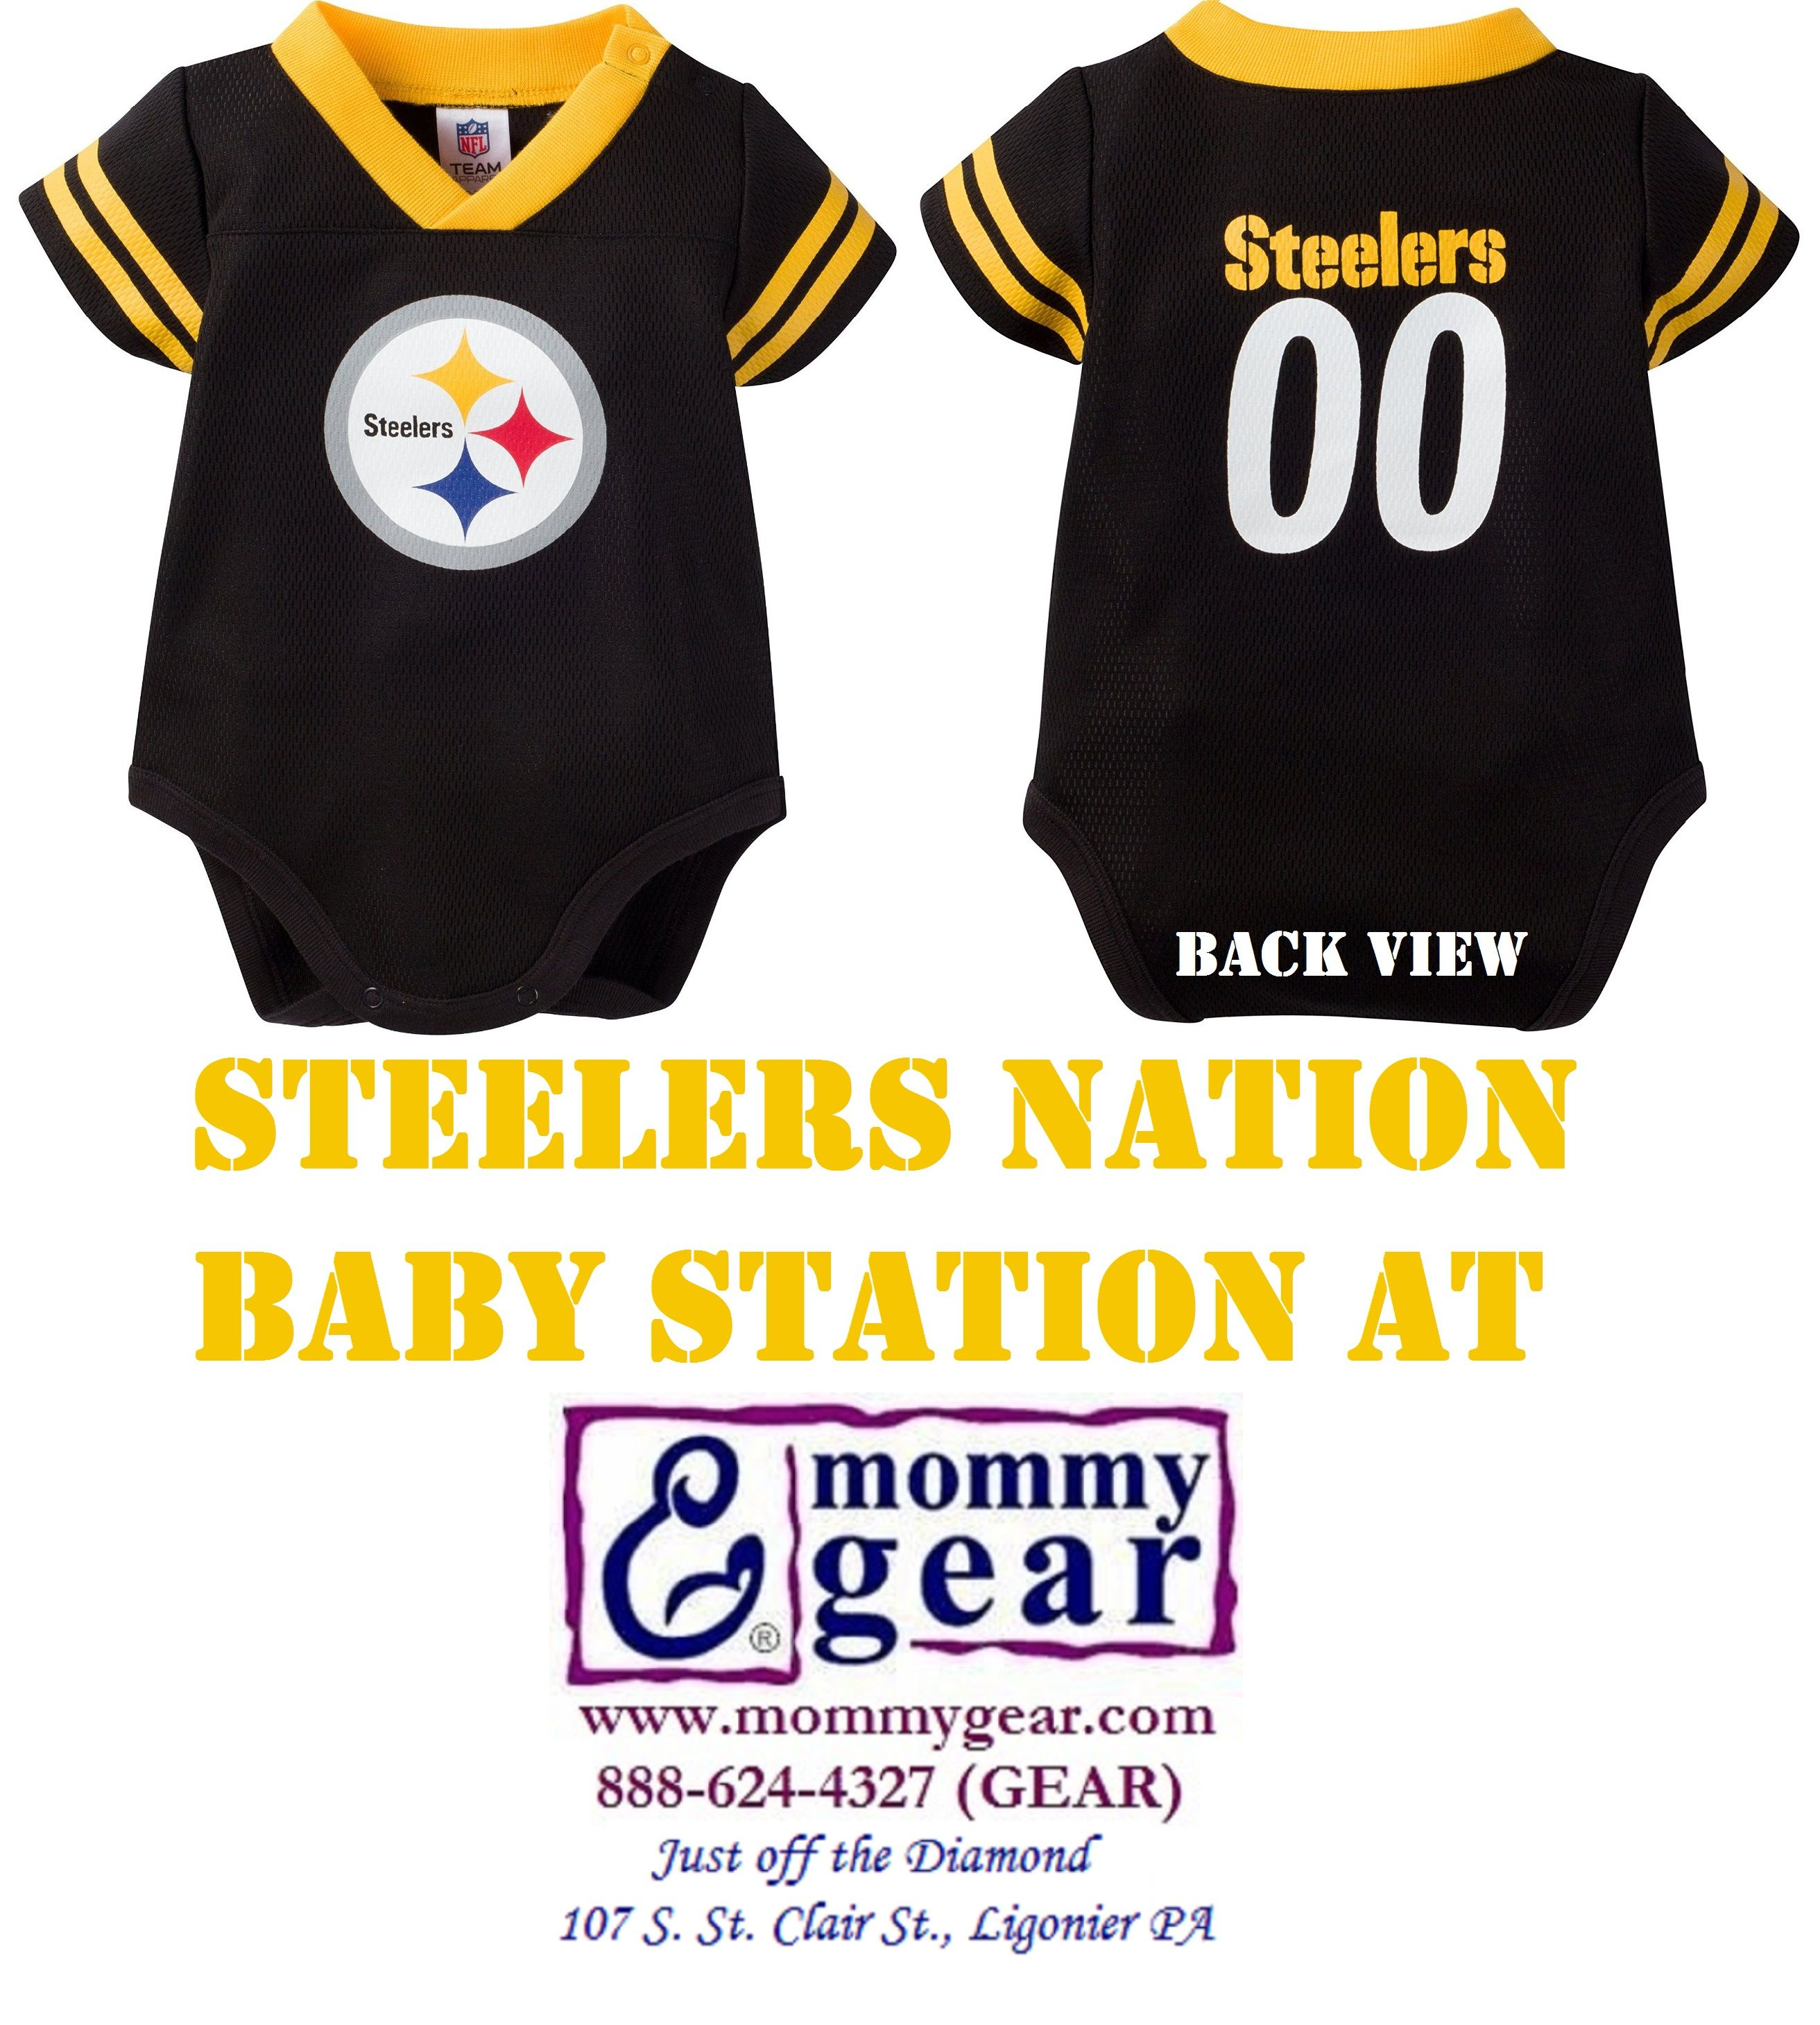 Steelers Baby Waffle Weave Players Jersey at Mommy Gear Choose 0 3